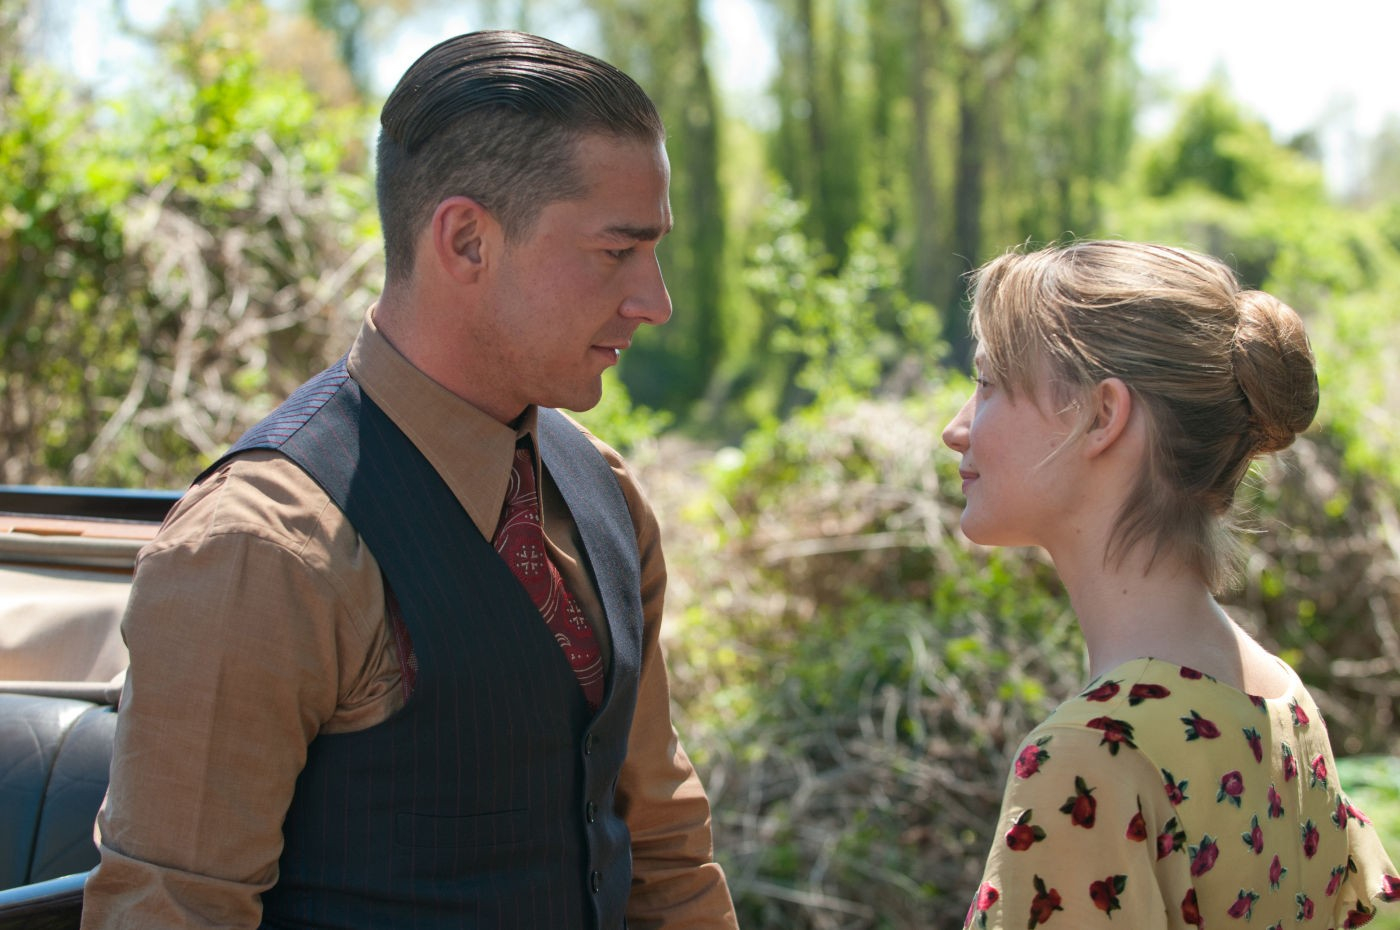 Shia LaBeouf and Mia Wasikowska in Lawless (2012)